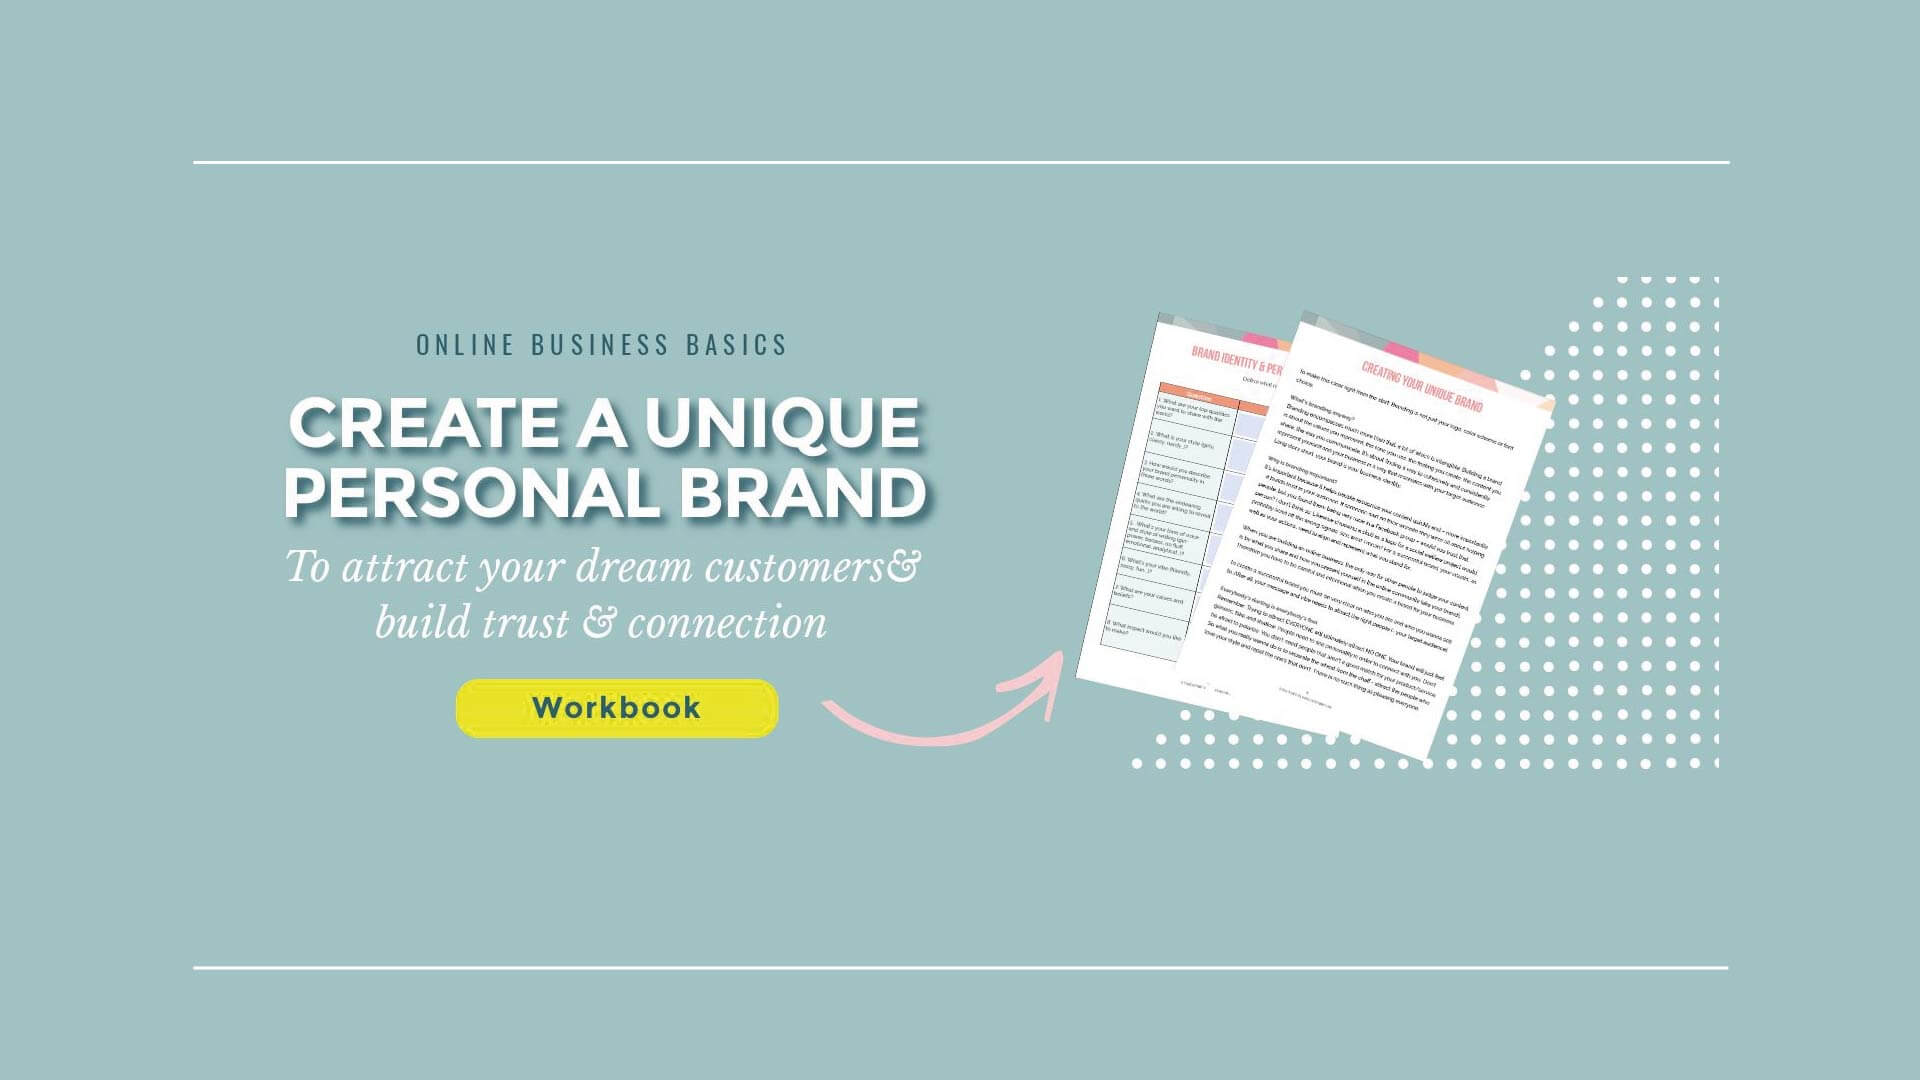 Work-From-Home Made Easy - Personal Brand